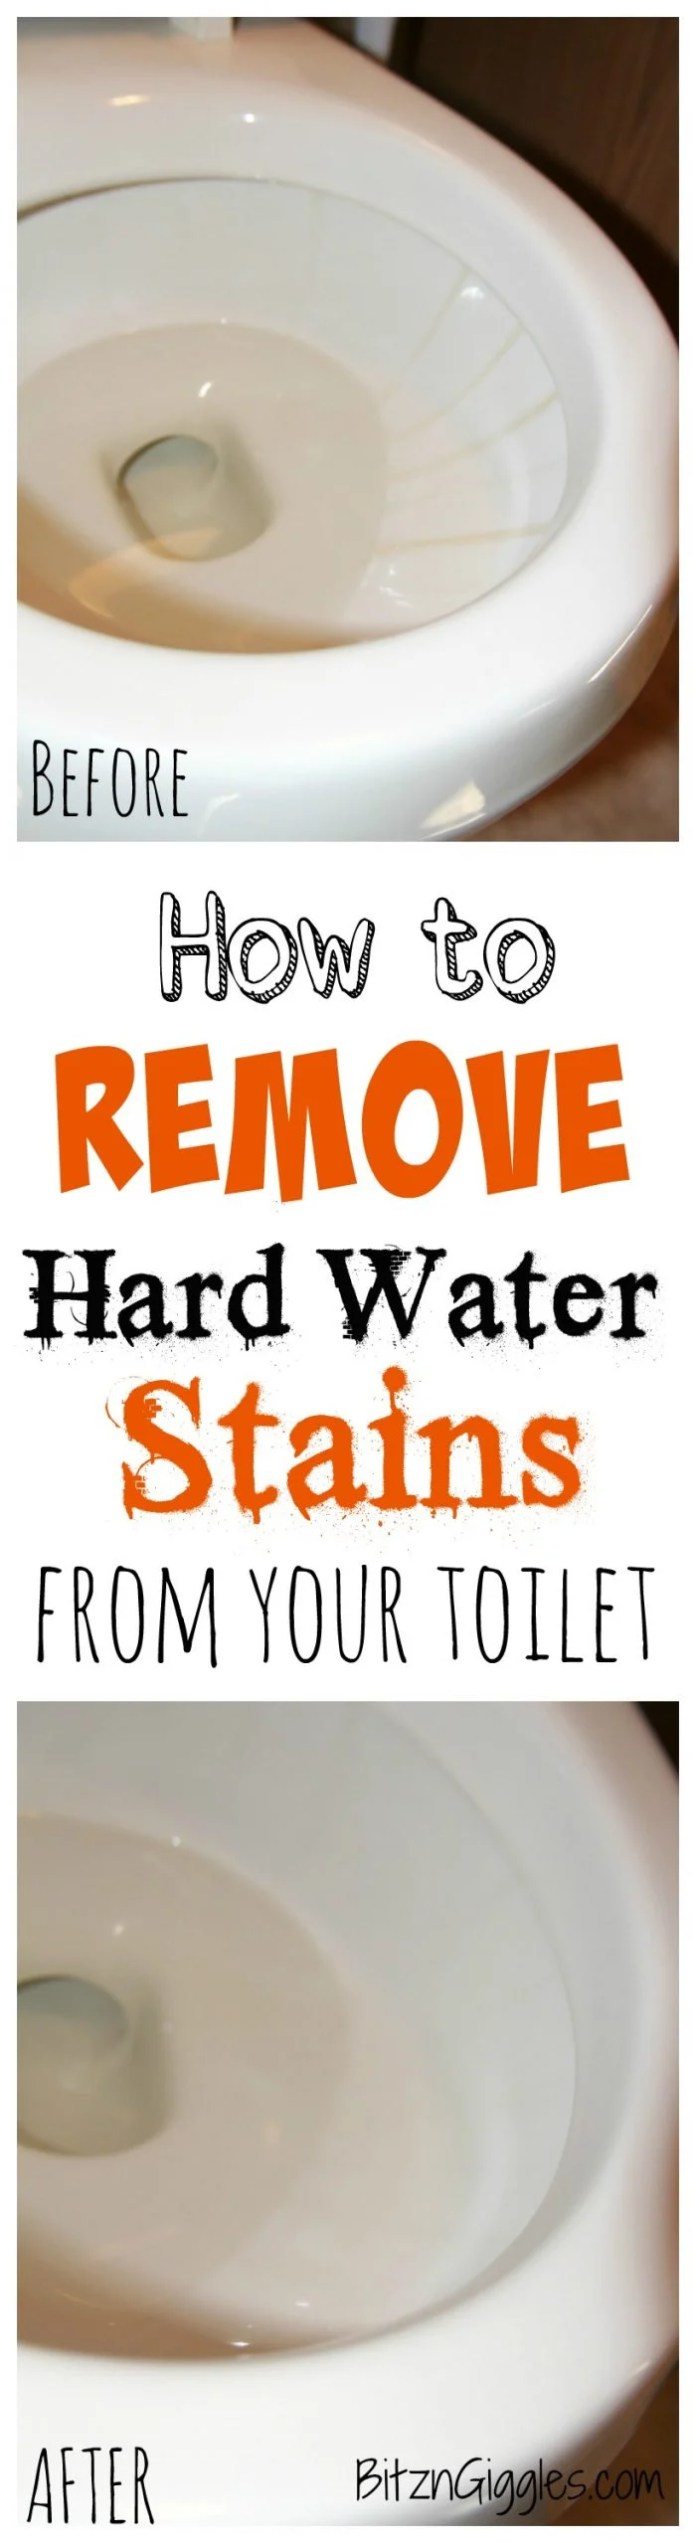 How to Clean Your Entire Home | Scrubbing Hard Water From Toilets Hack